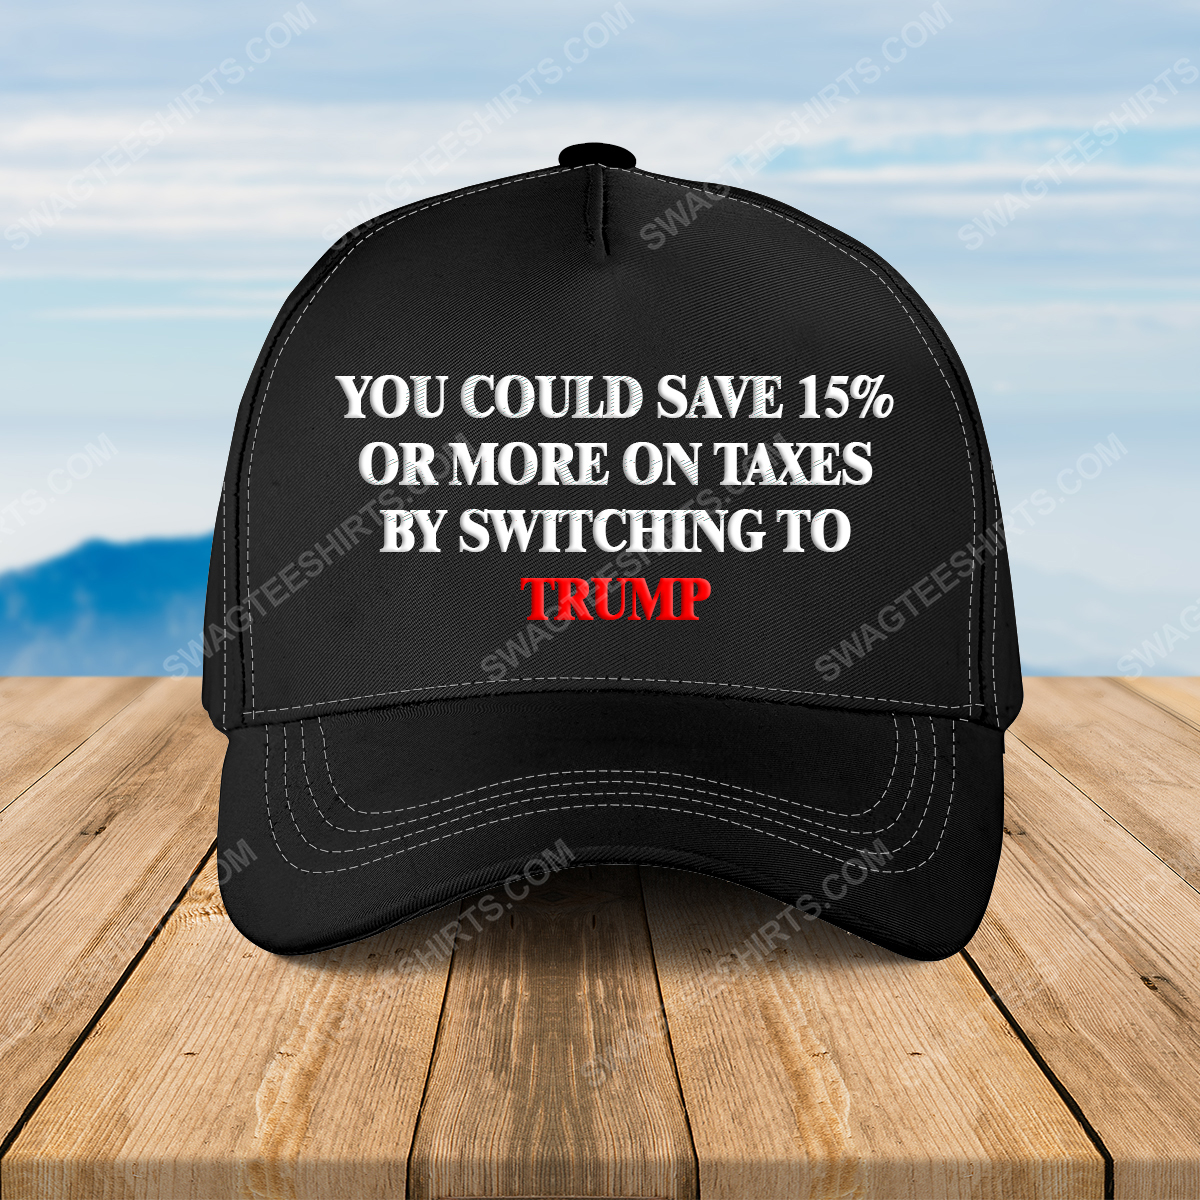 You could save 15 percent or more on taxes by switching to trump full print classic hat 1 - Copy (3)